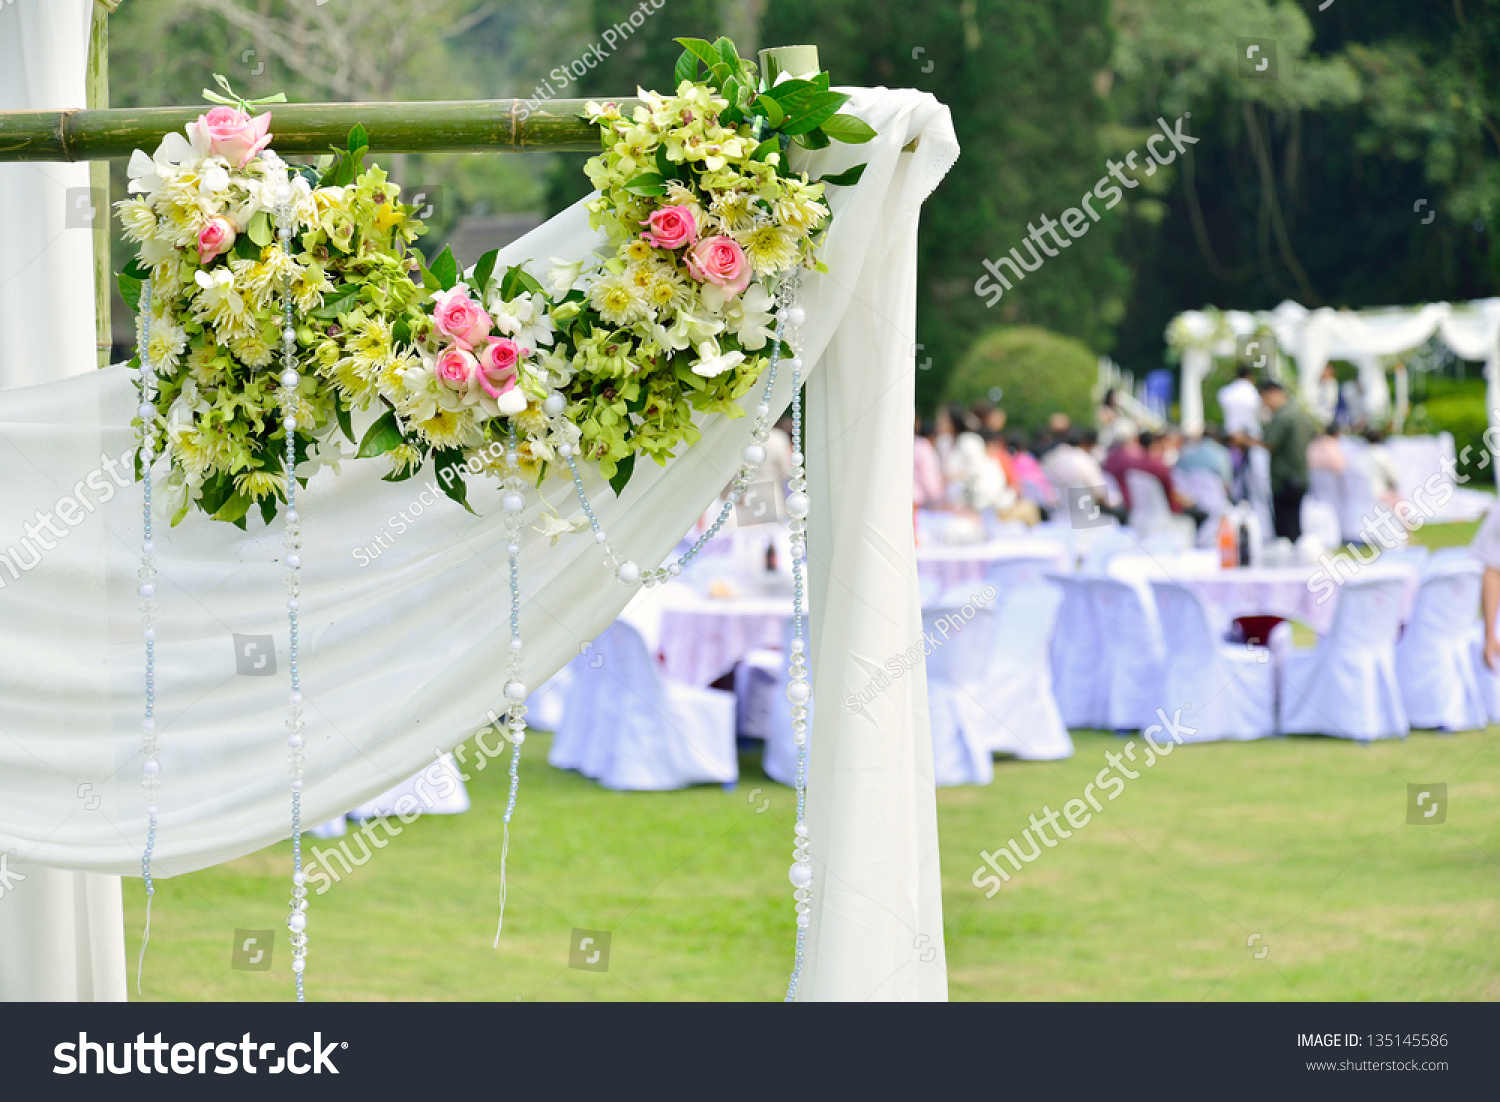 Outdoor Wedding Ceremony Décor: White Flowers Decorations During Outdoor Wedding Ceremony